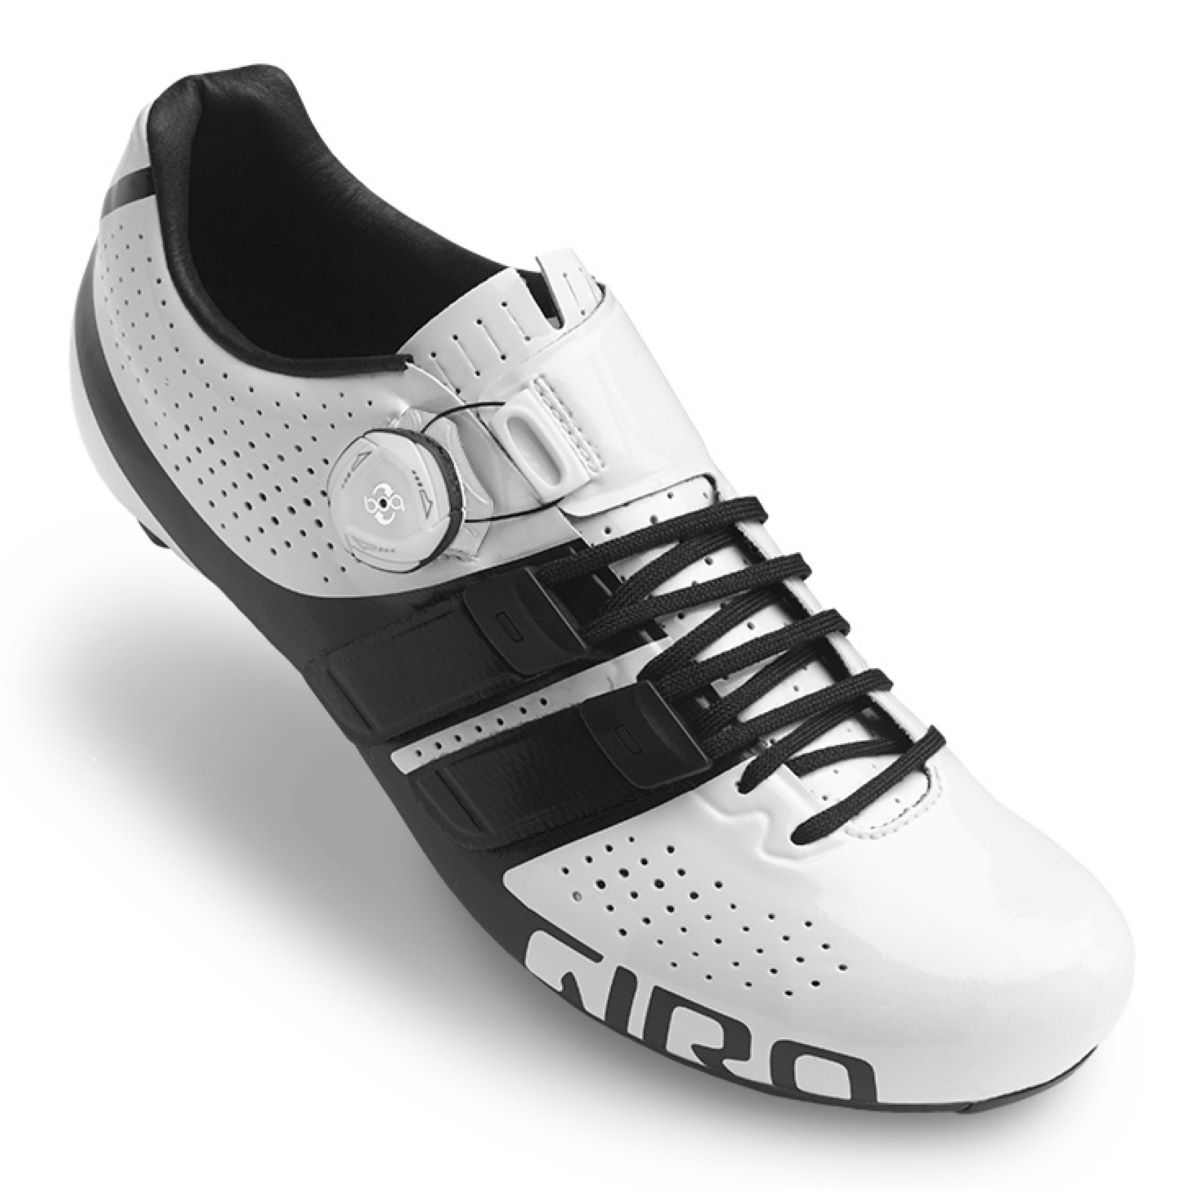 Giro Giro Factor Techlace Road Shoes   Cycling Shoes